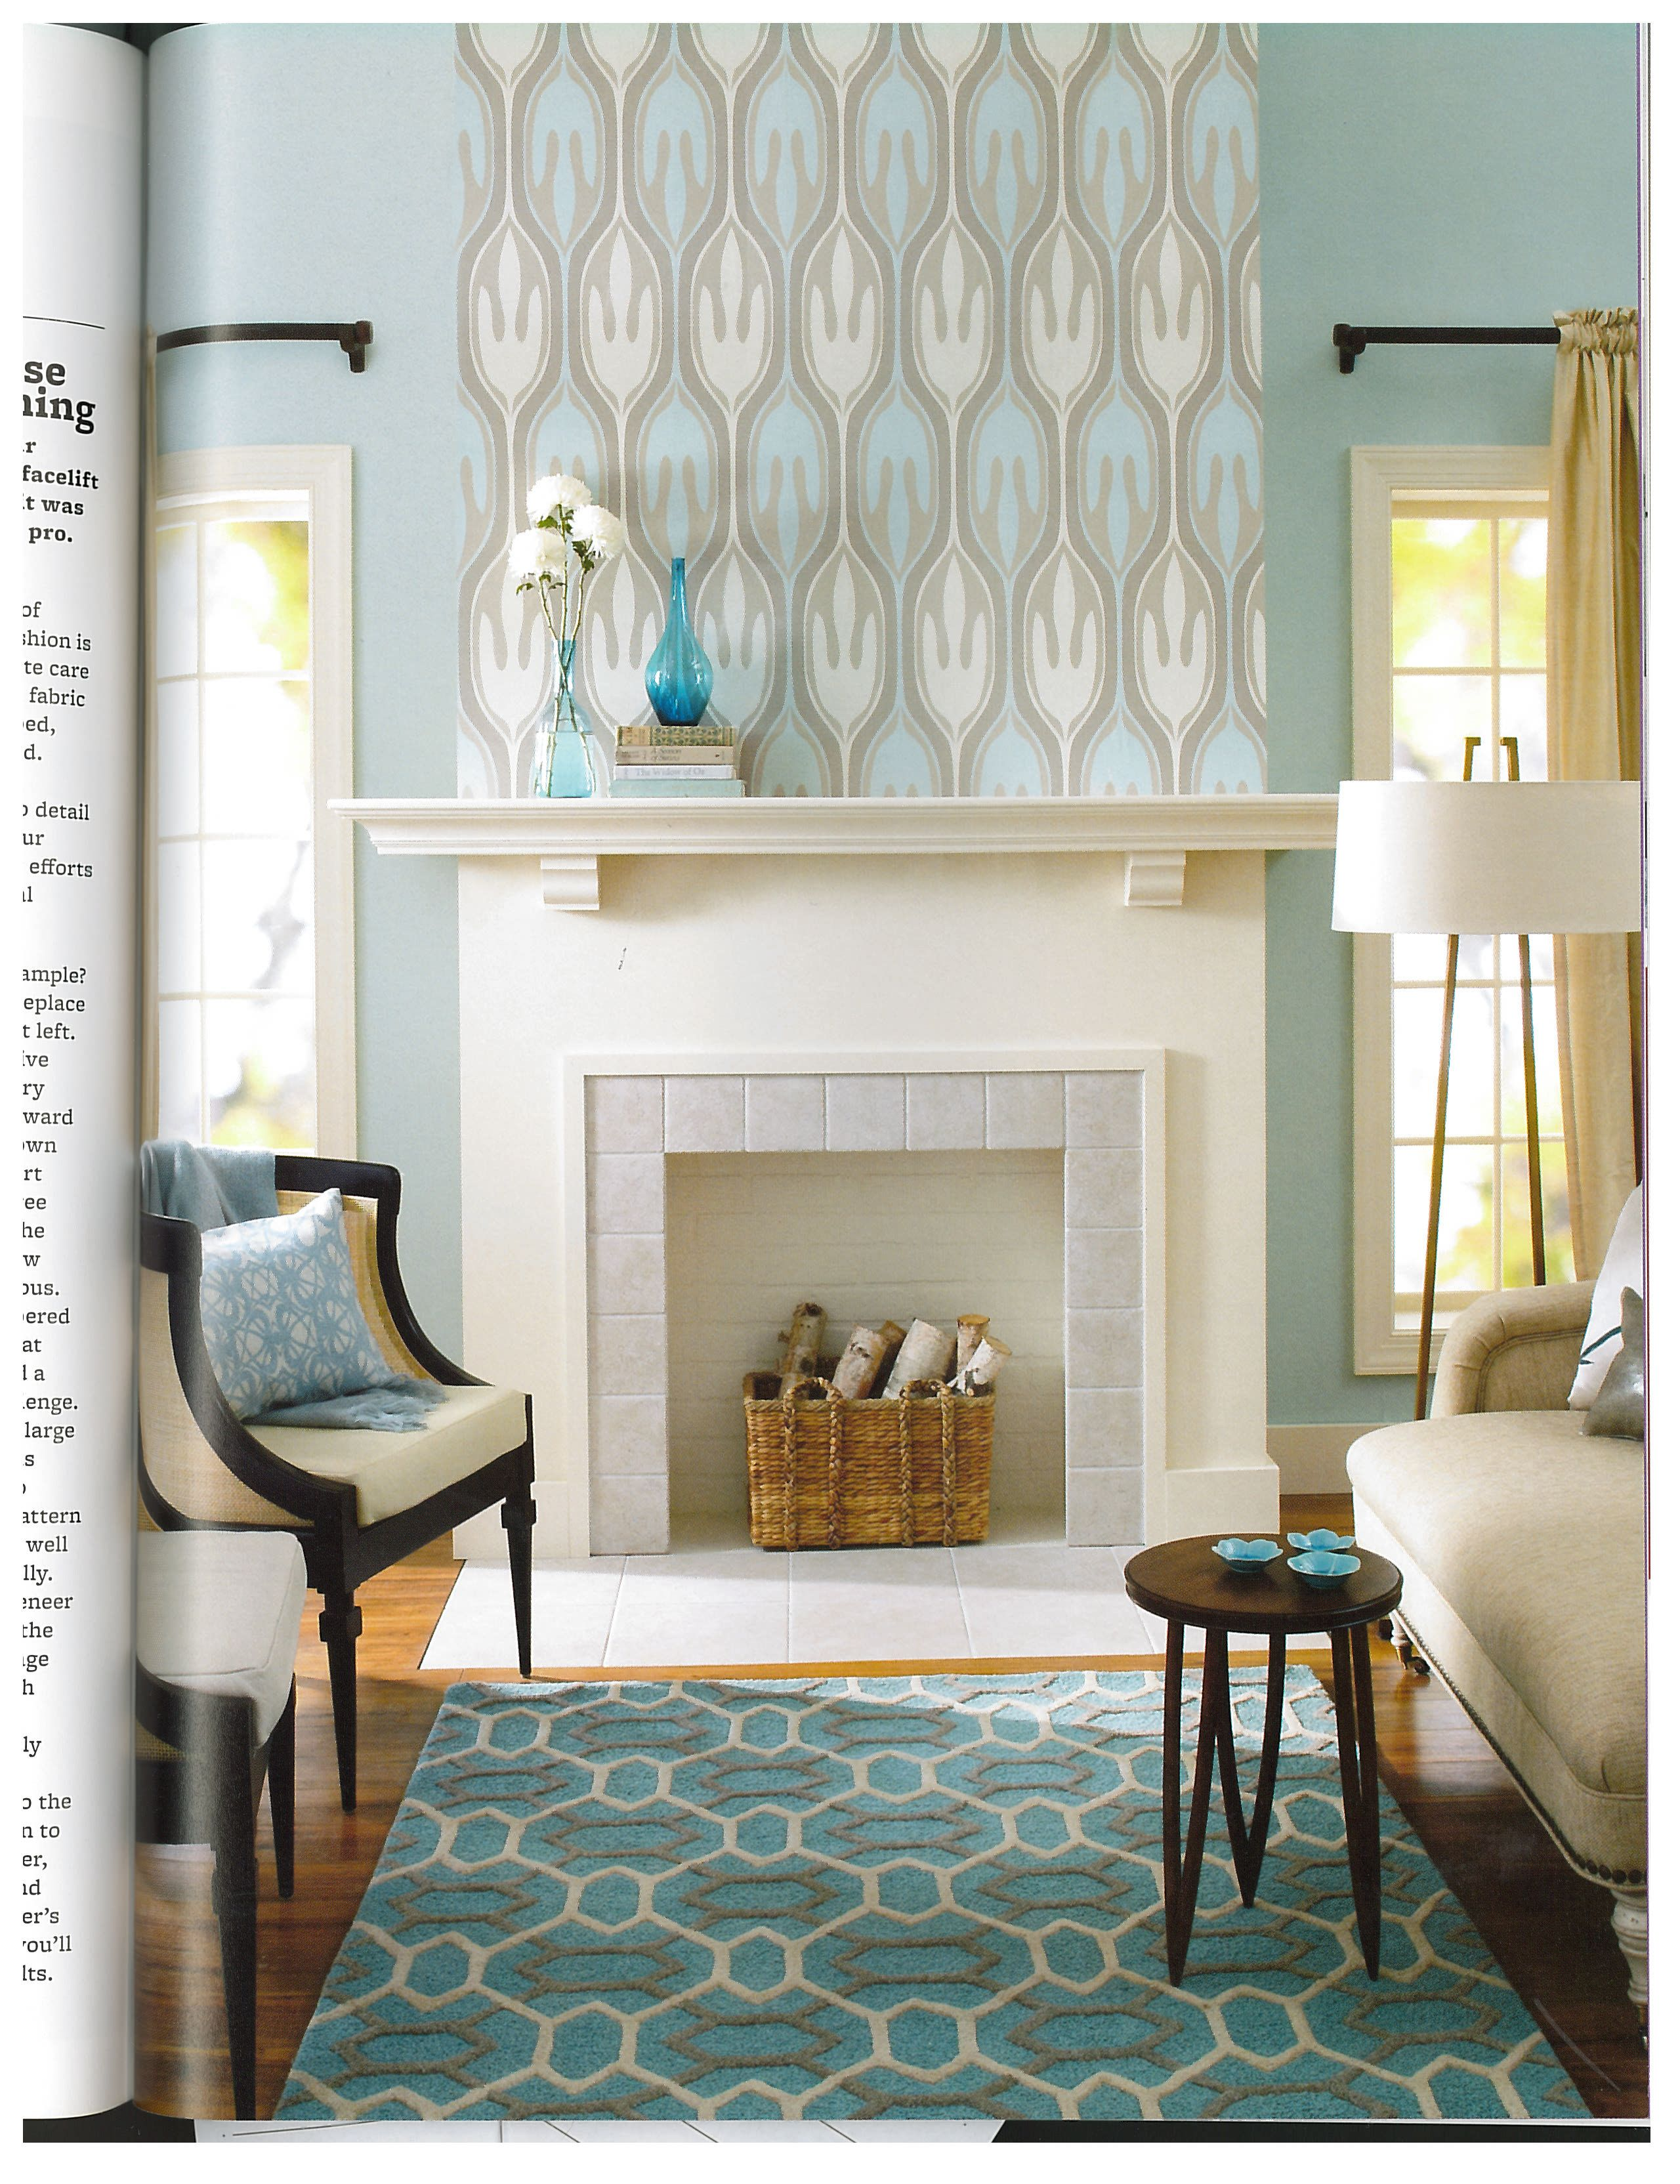 Better Homes and Gardens Fireplace Design & Decorating Ideas, 2nd ...